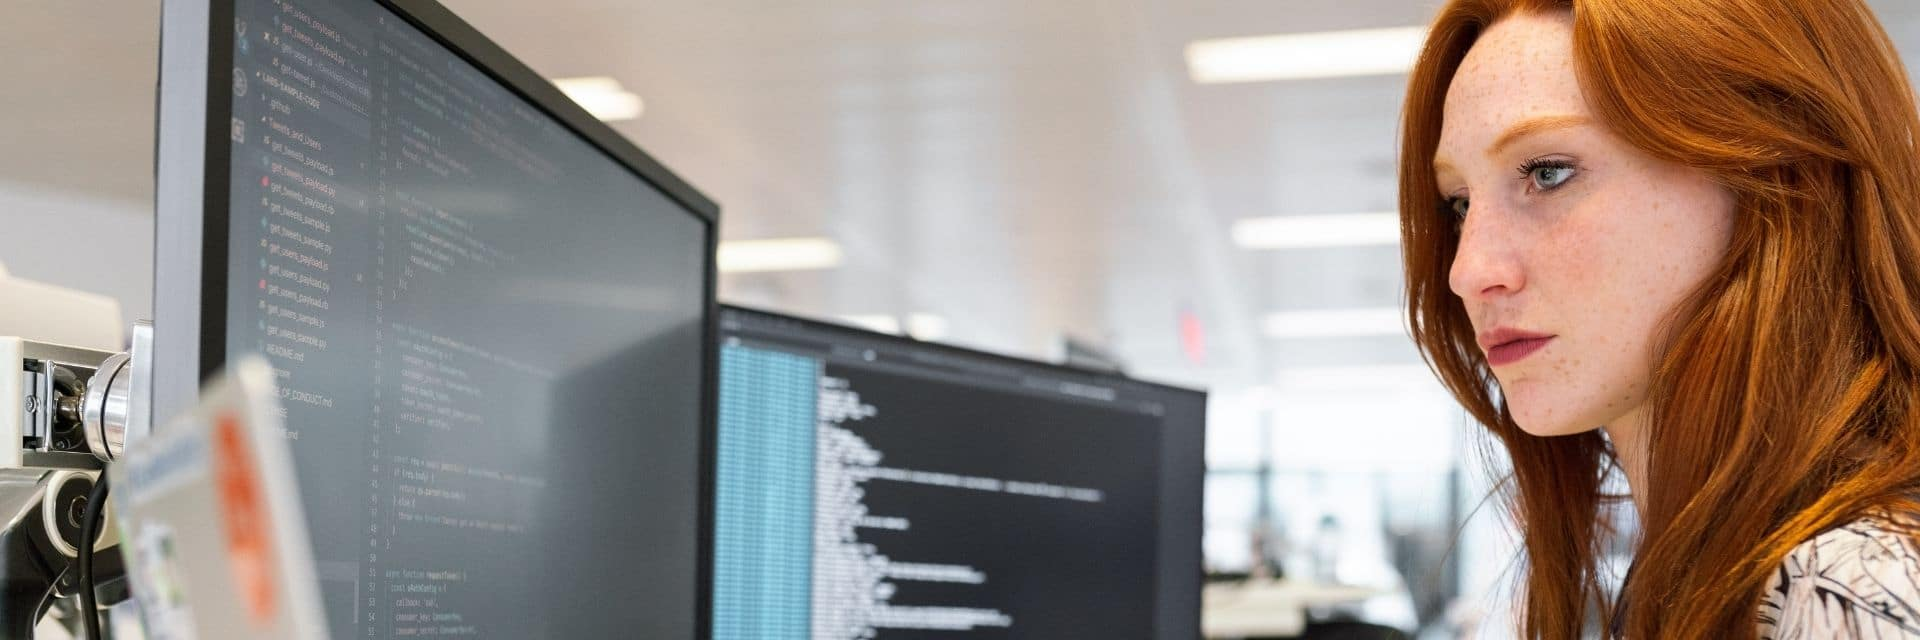 Team member working in front of two computer monitors